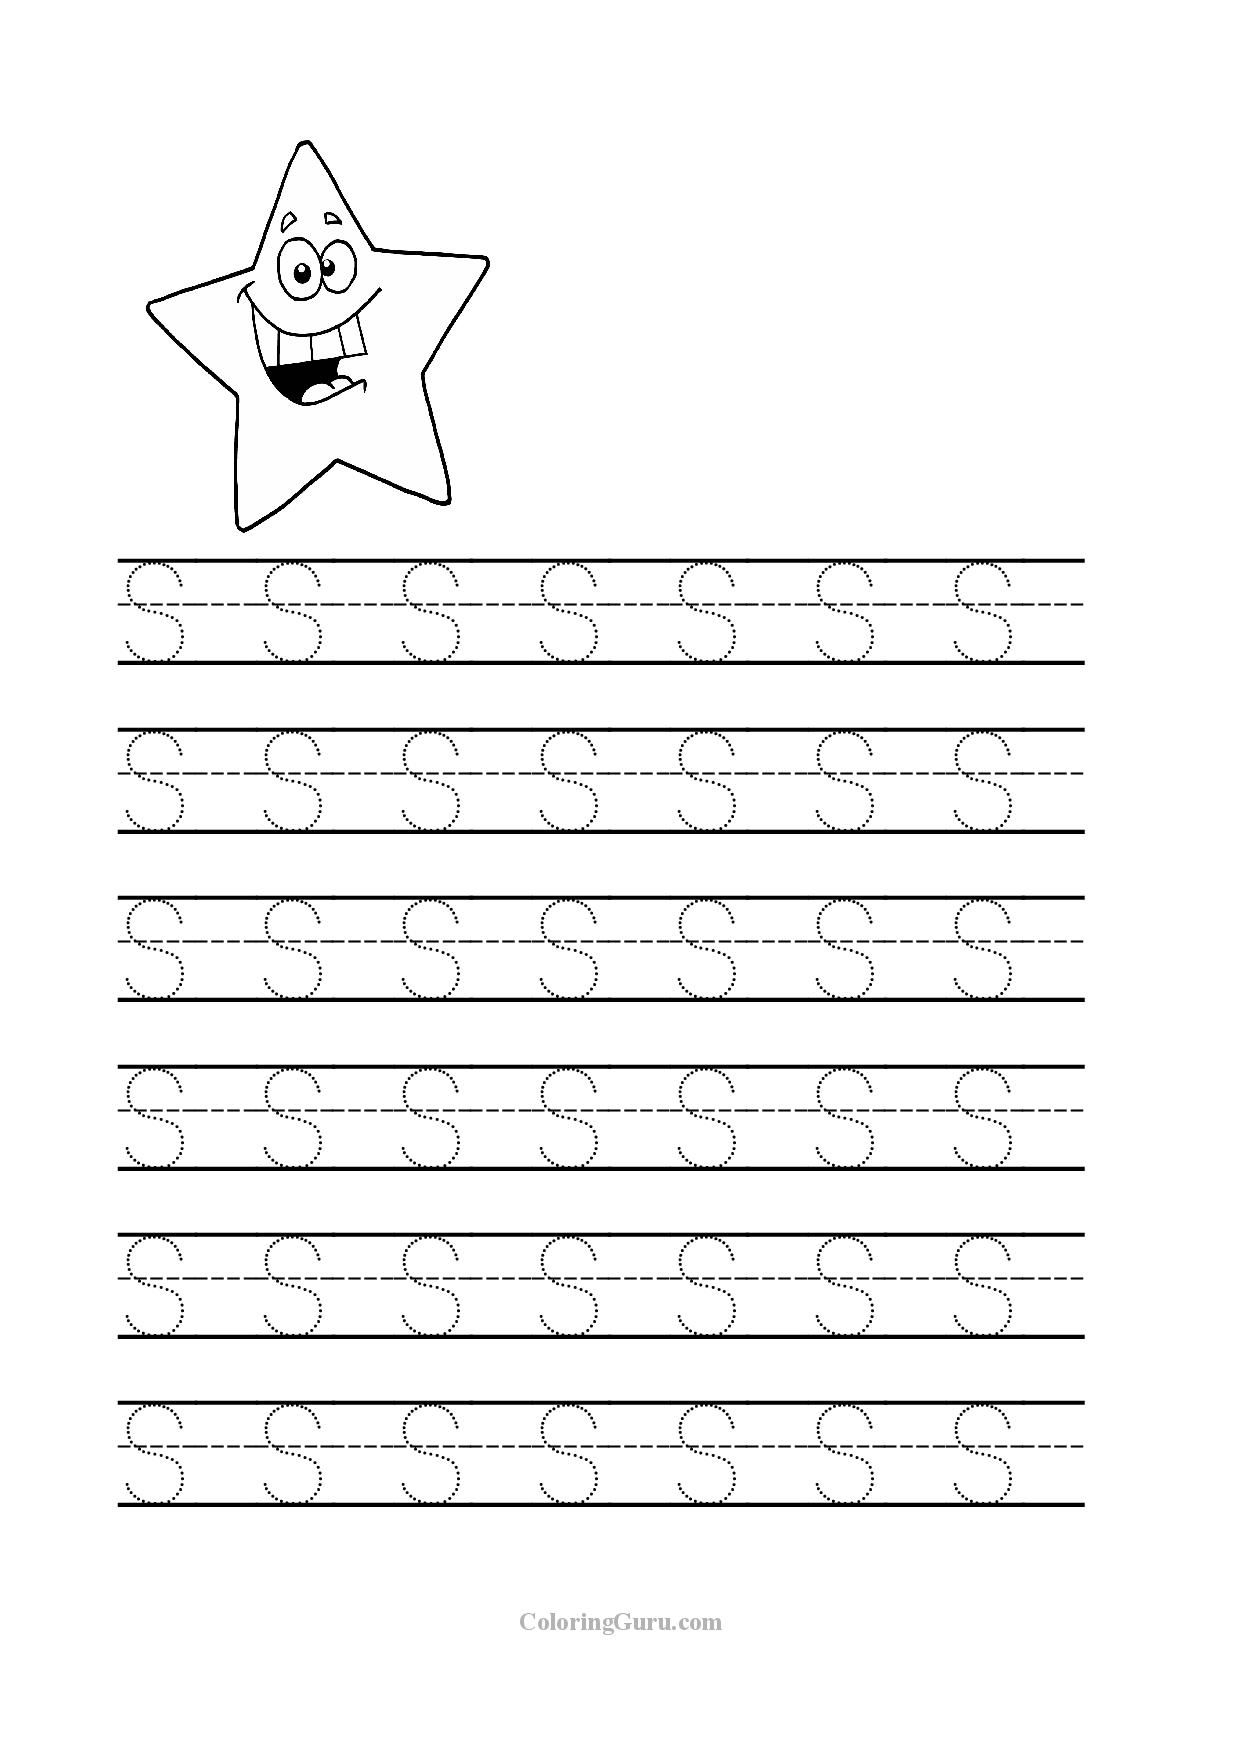 Free Printable Tracing Letter S Worksheets For Preschool regarding Free Printable Tracing Letters For Toddlers